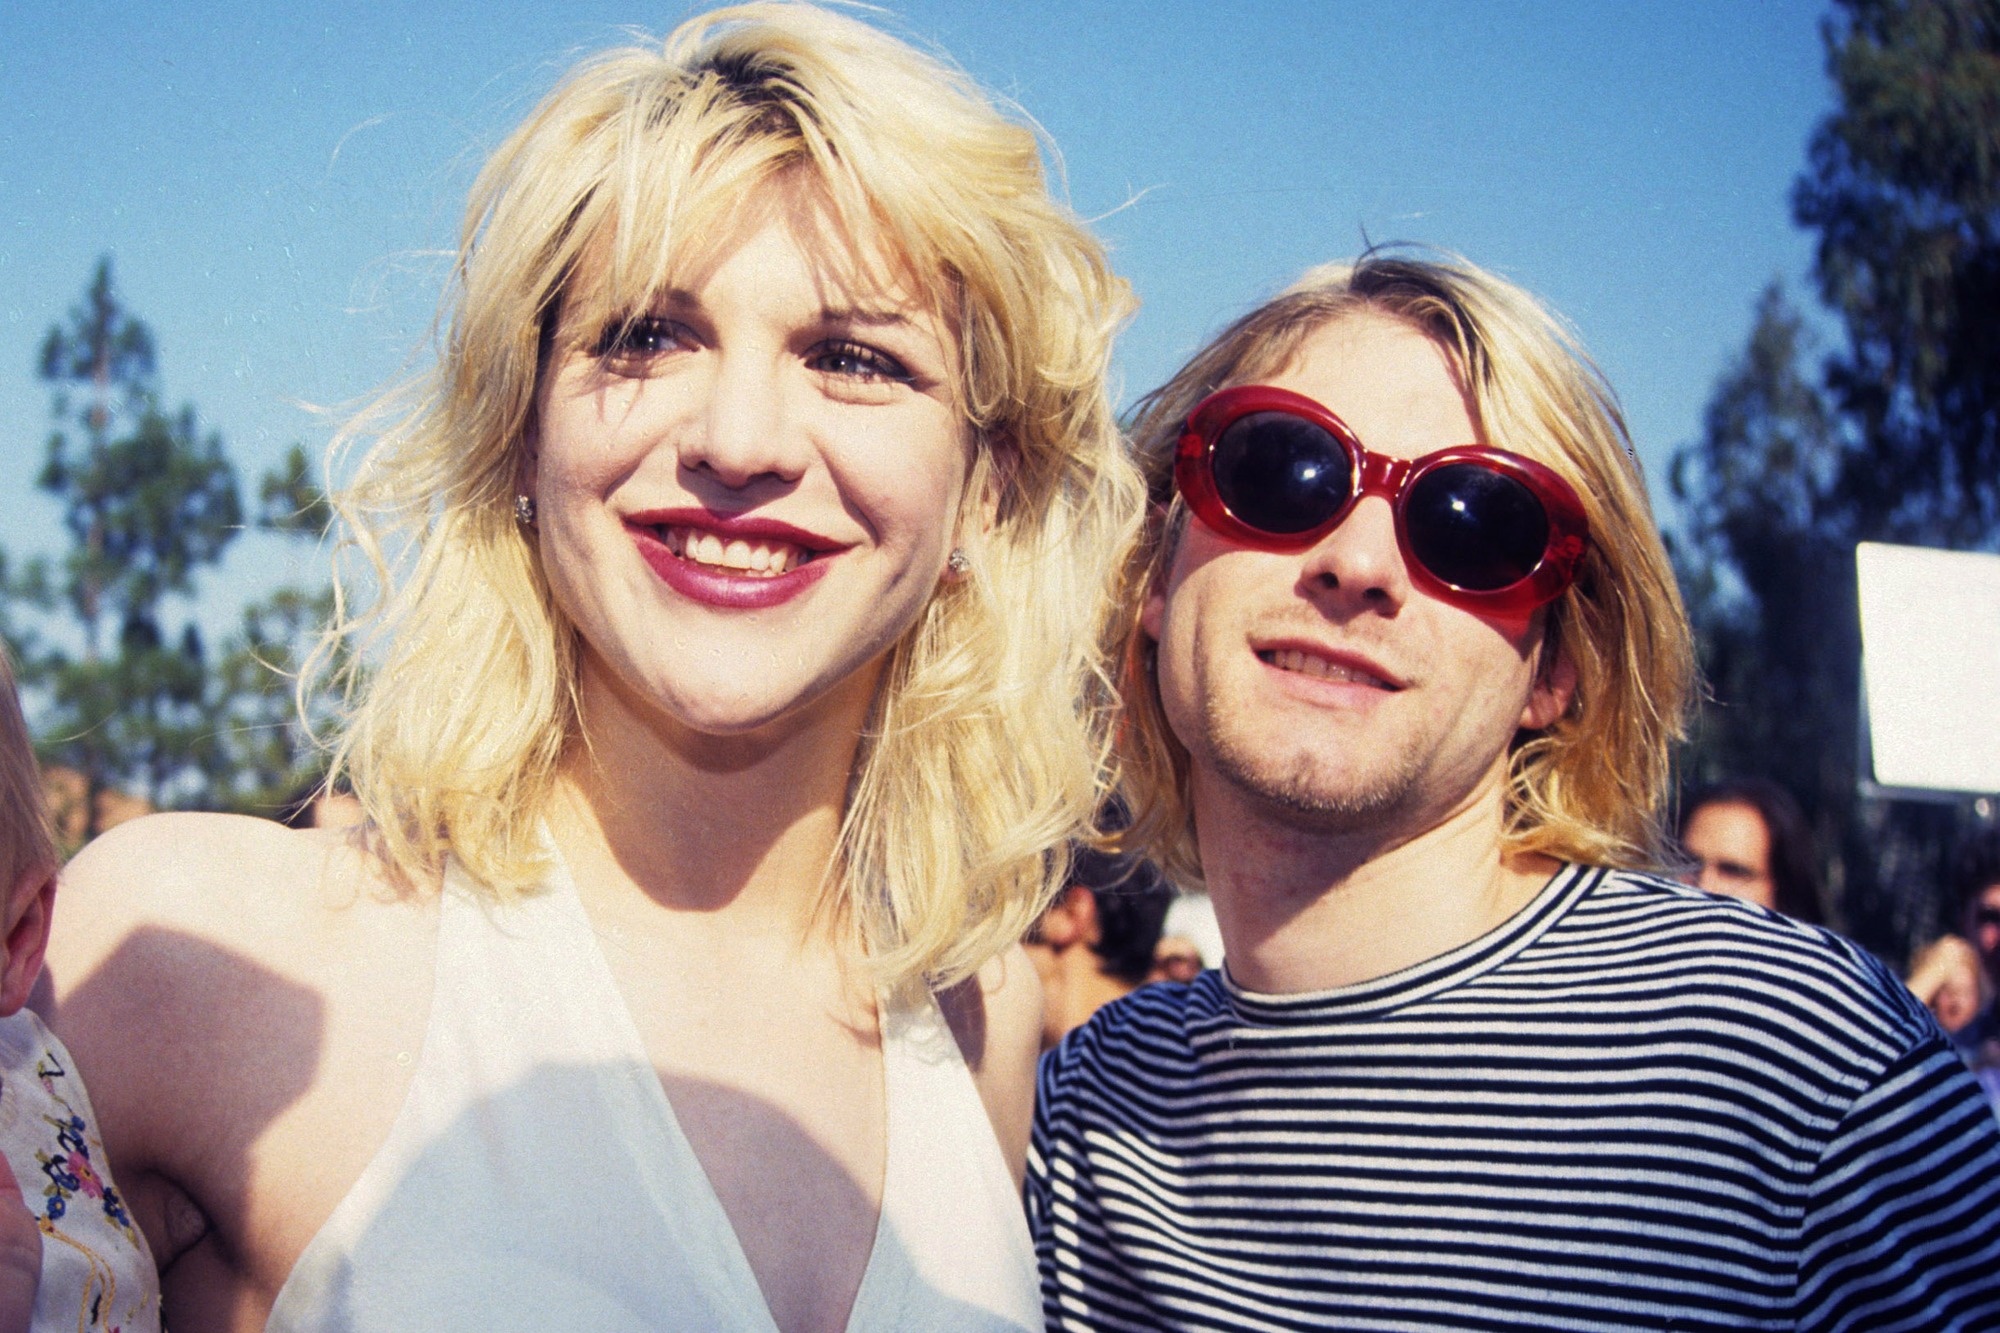 "Kurt Cobain and Courtney Love ""width ="" 2000 ""height ="" 1333 ""srcset ="" https: // www.top5.com/wp-content/uploads/2013 Kurt-cobain-and-courtney-love - 300x200.jpg 300w, https://www.top5.com/wp-content/uploads/2013/07/kurt-cobain-and-courtney-love--768x512.jpg 768w, https://www.top5.com/wp- content / uploads / 2013/07 / kurt-cobain-and-courtney-love - 1024x682.jpg 1024w ""Sizes ="" (max width: 2000px) 100vw, 2000px"